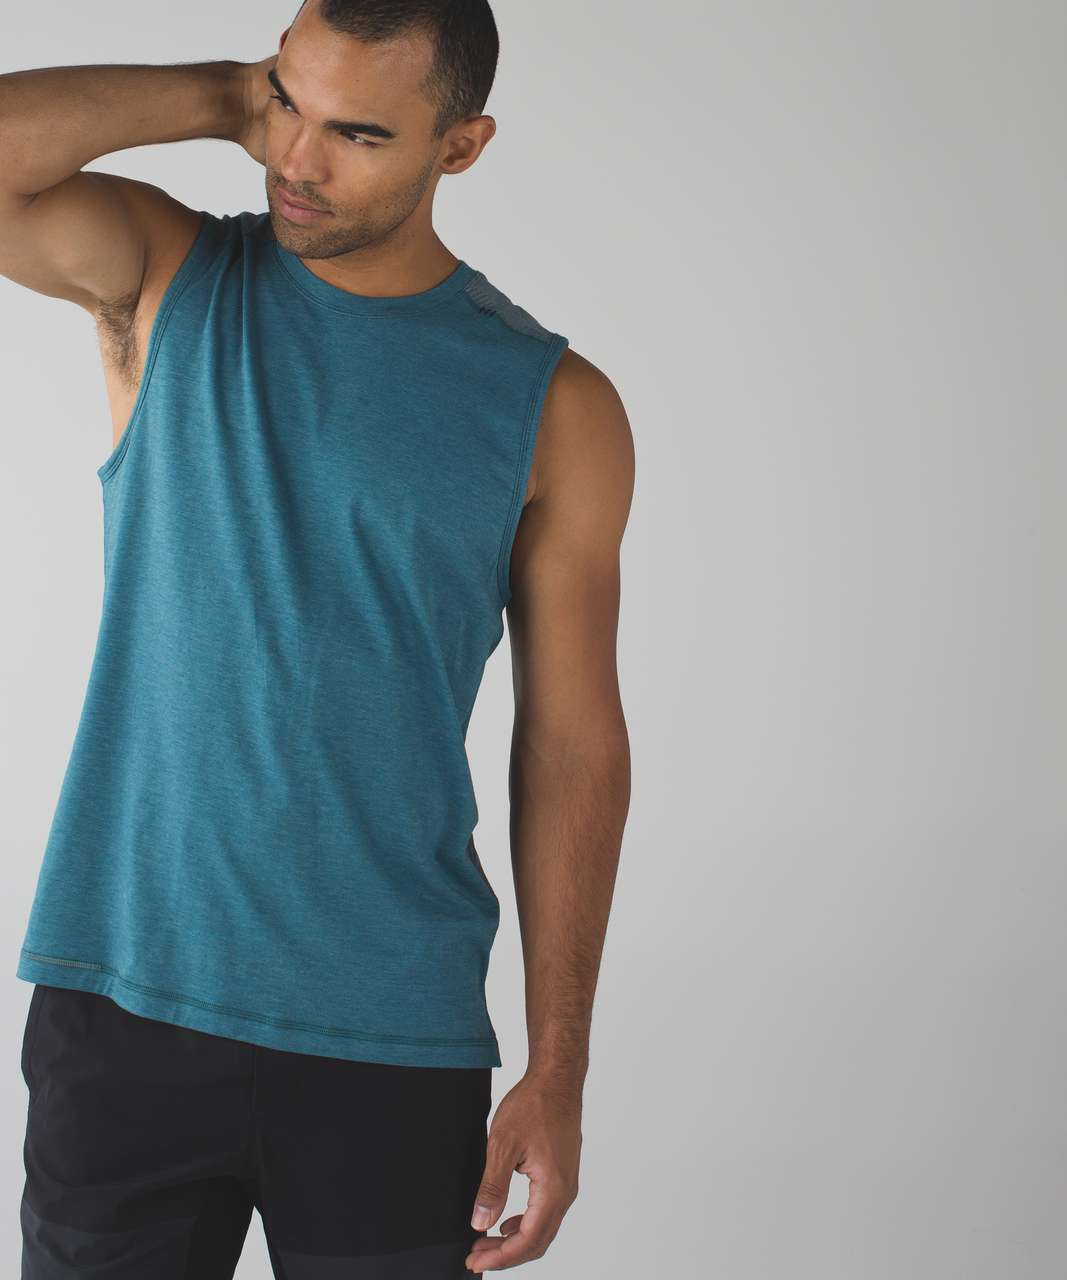 Lululemon Catalyst Camo Sleeveless - Heathered Desert Teal